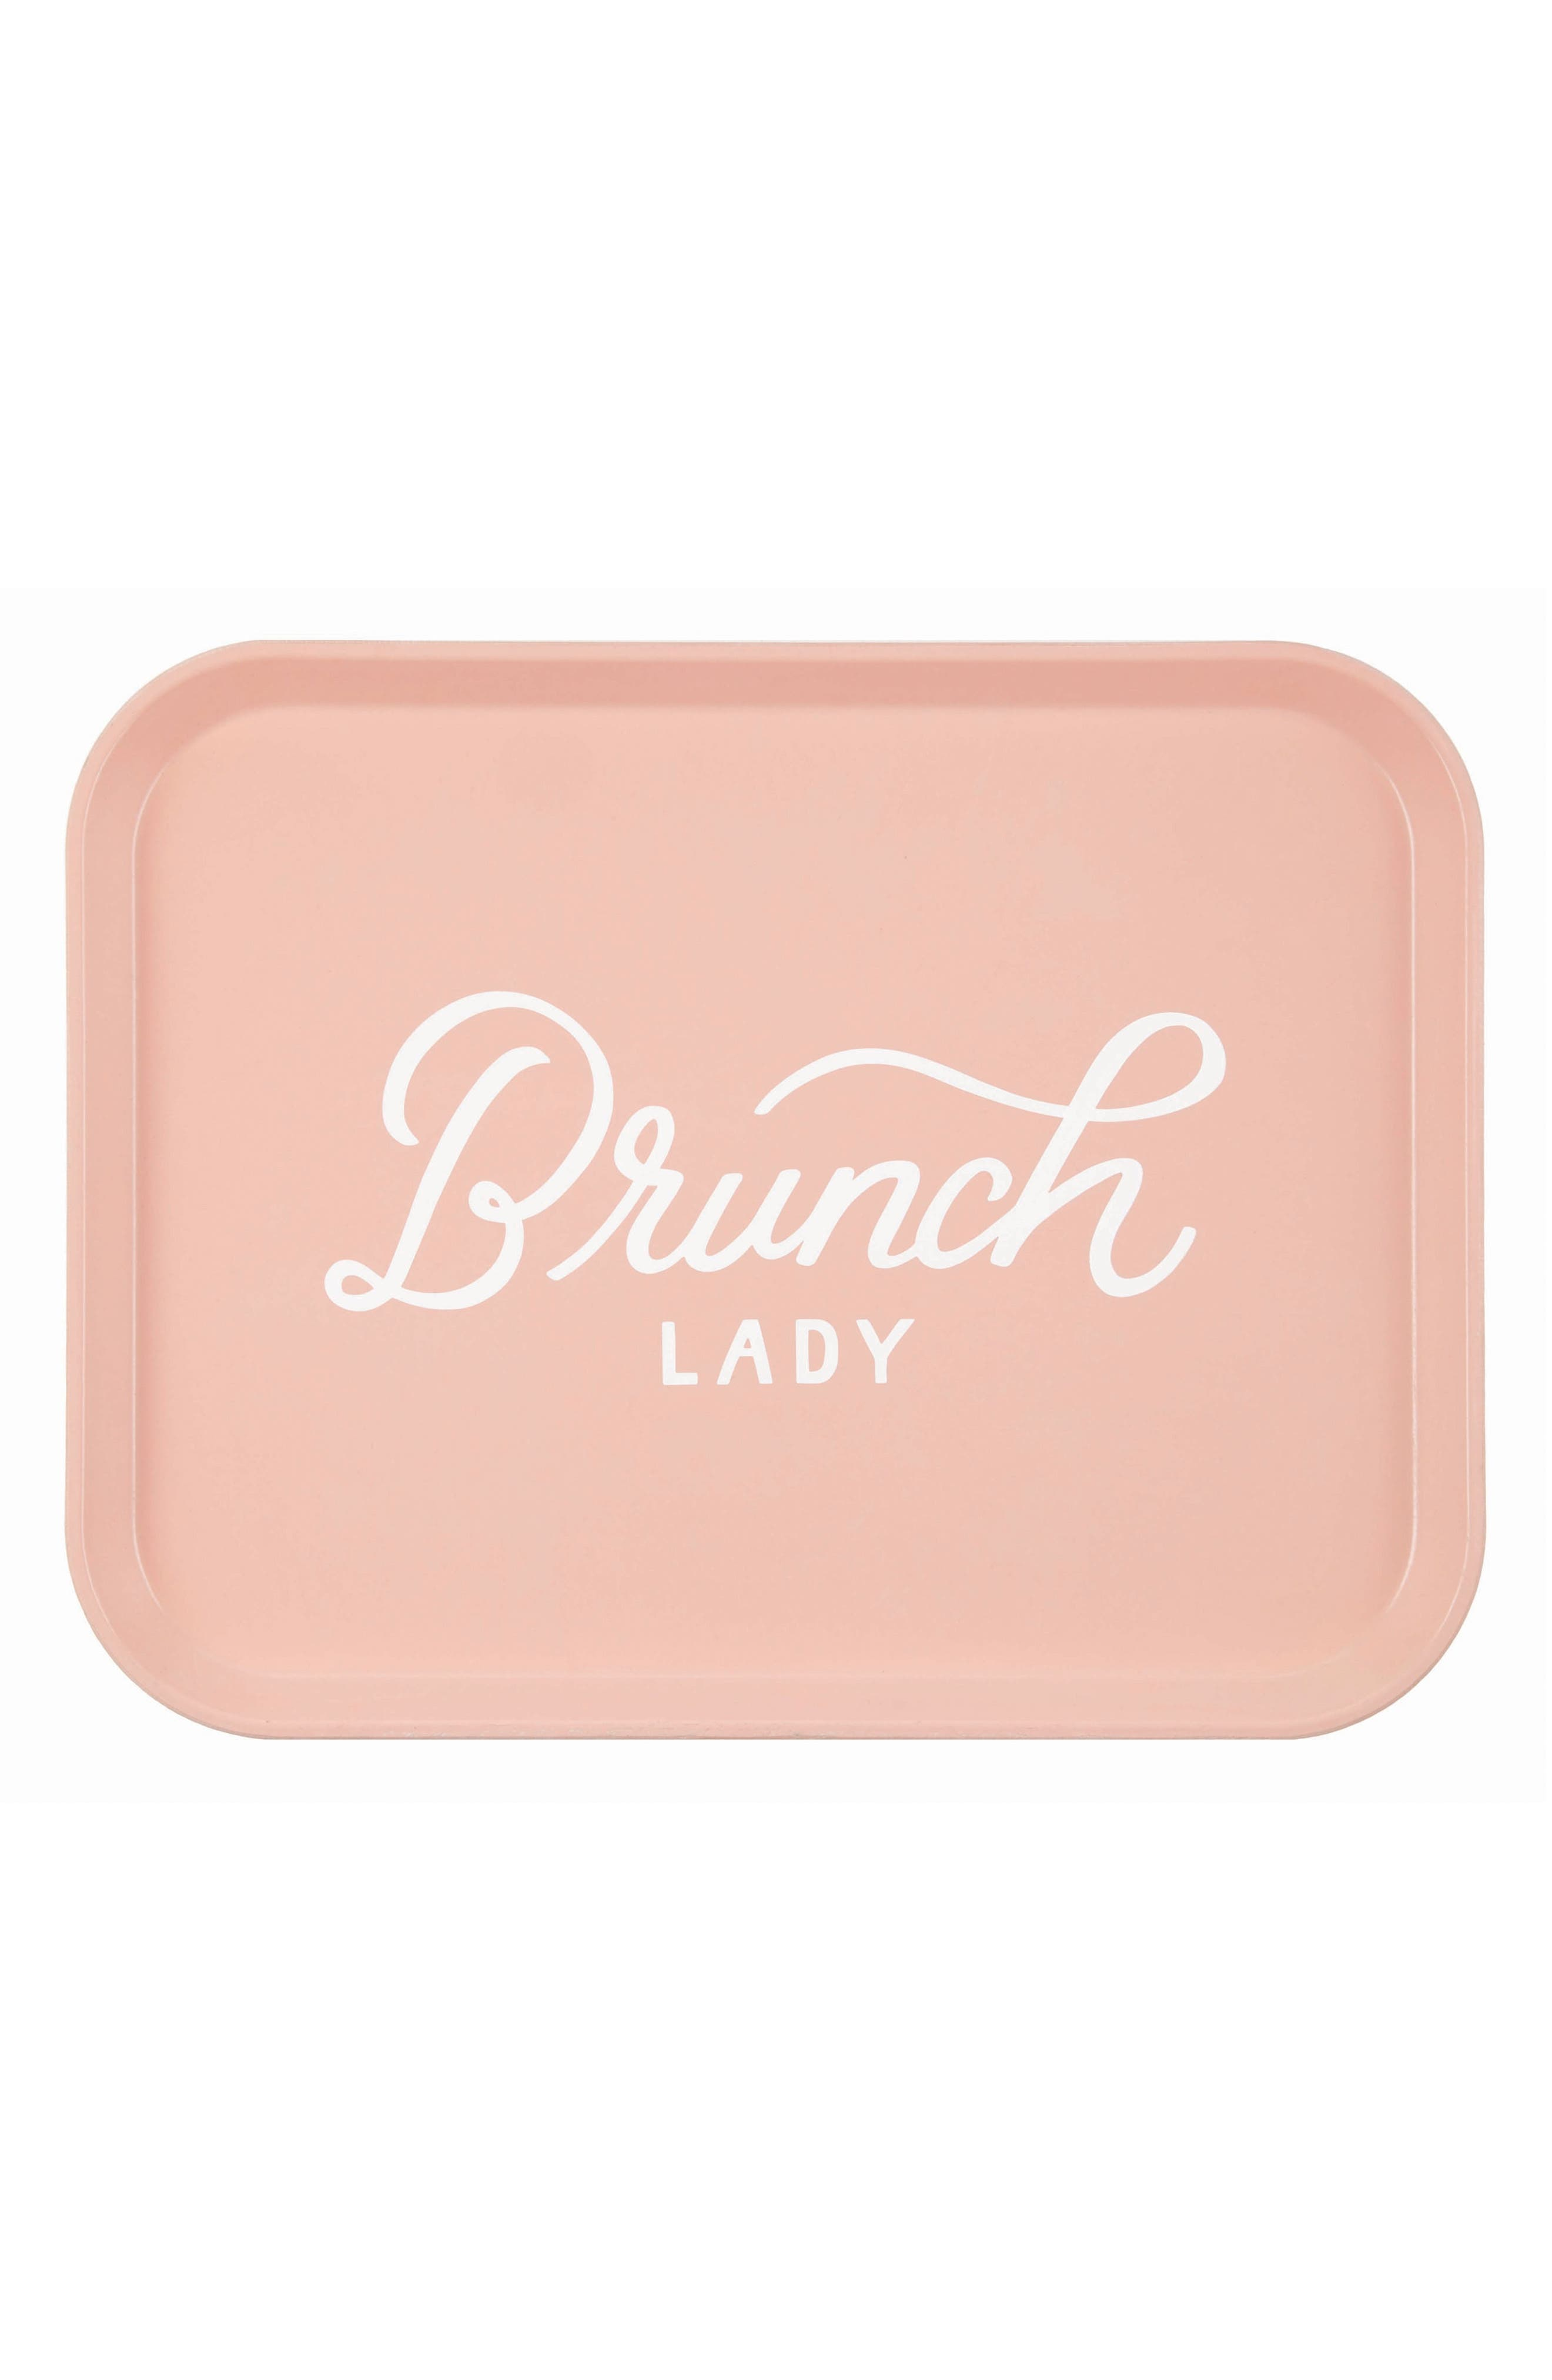 Brunch Lady Tray,                         Main,                         color, Pink